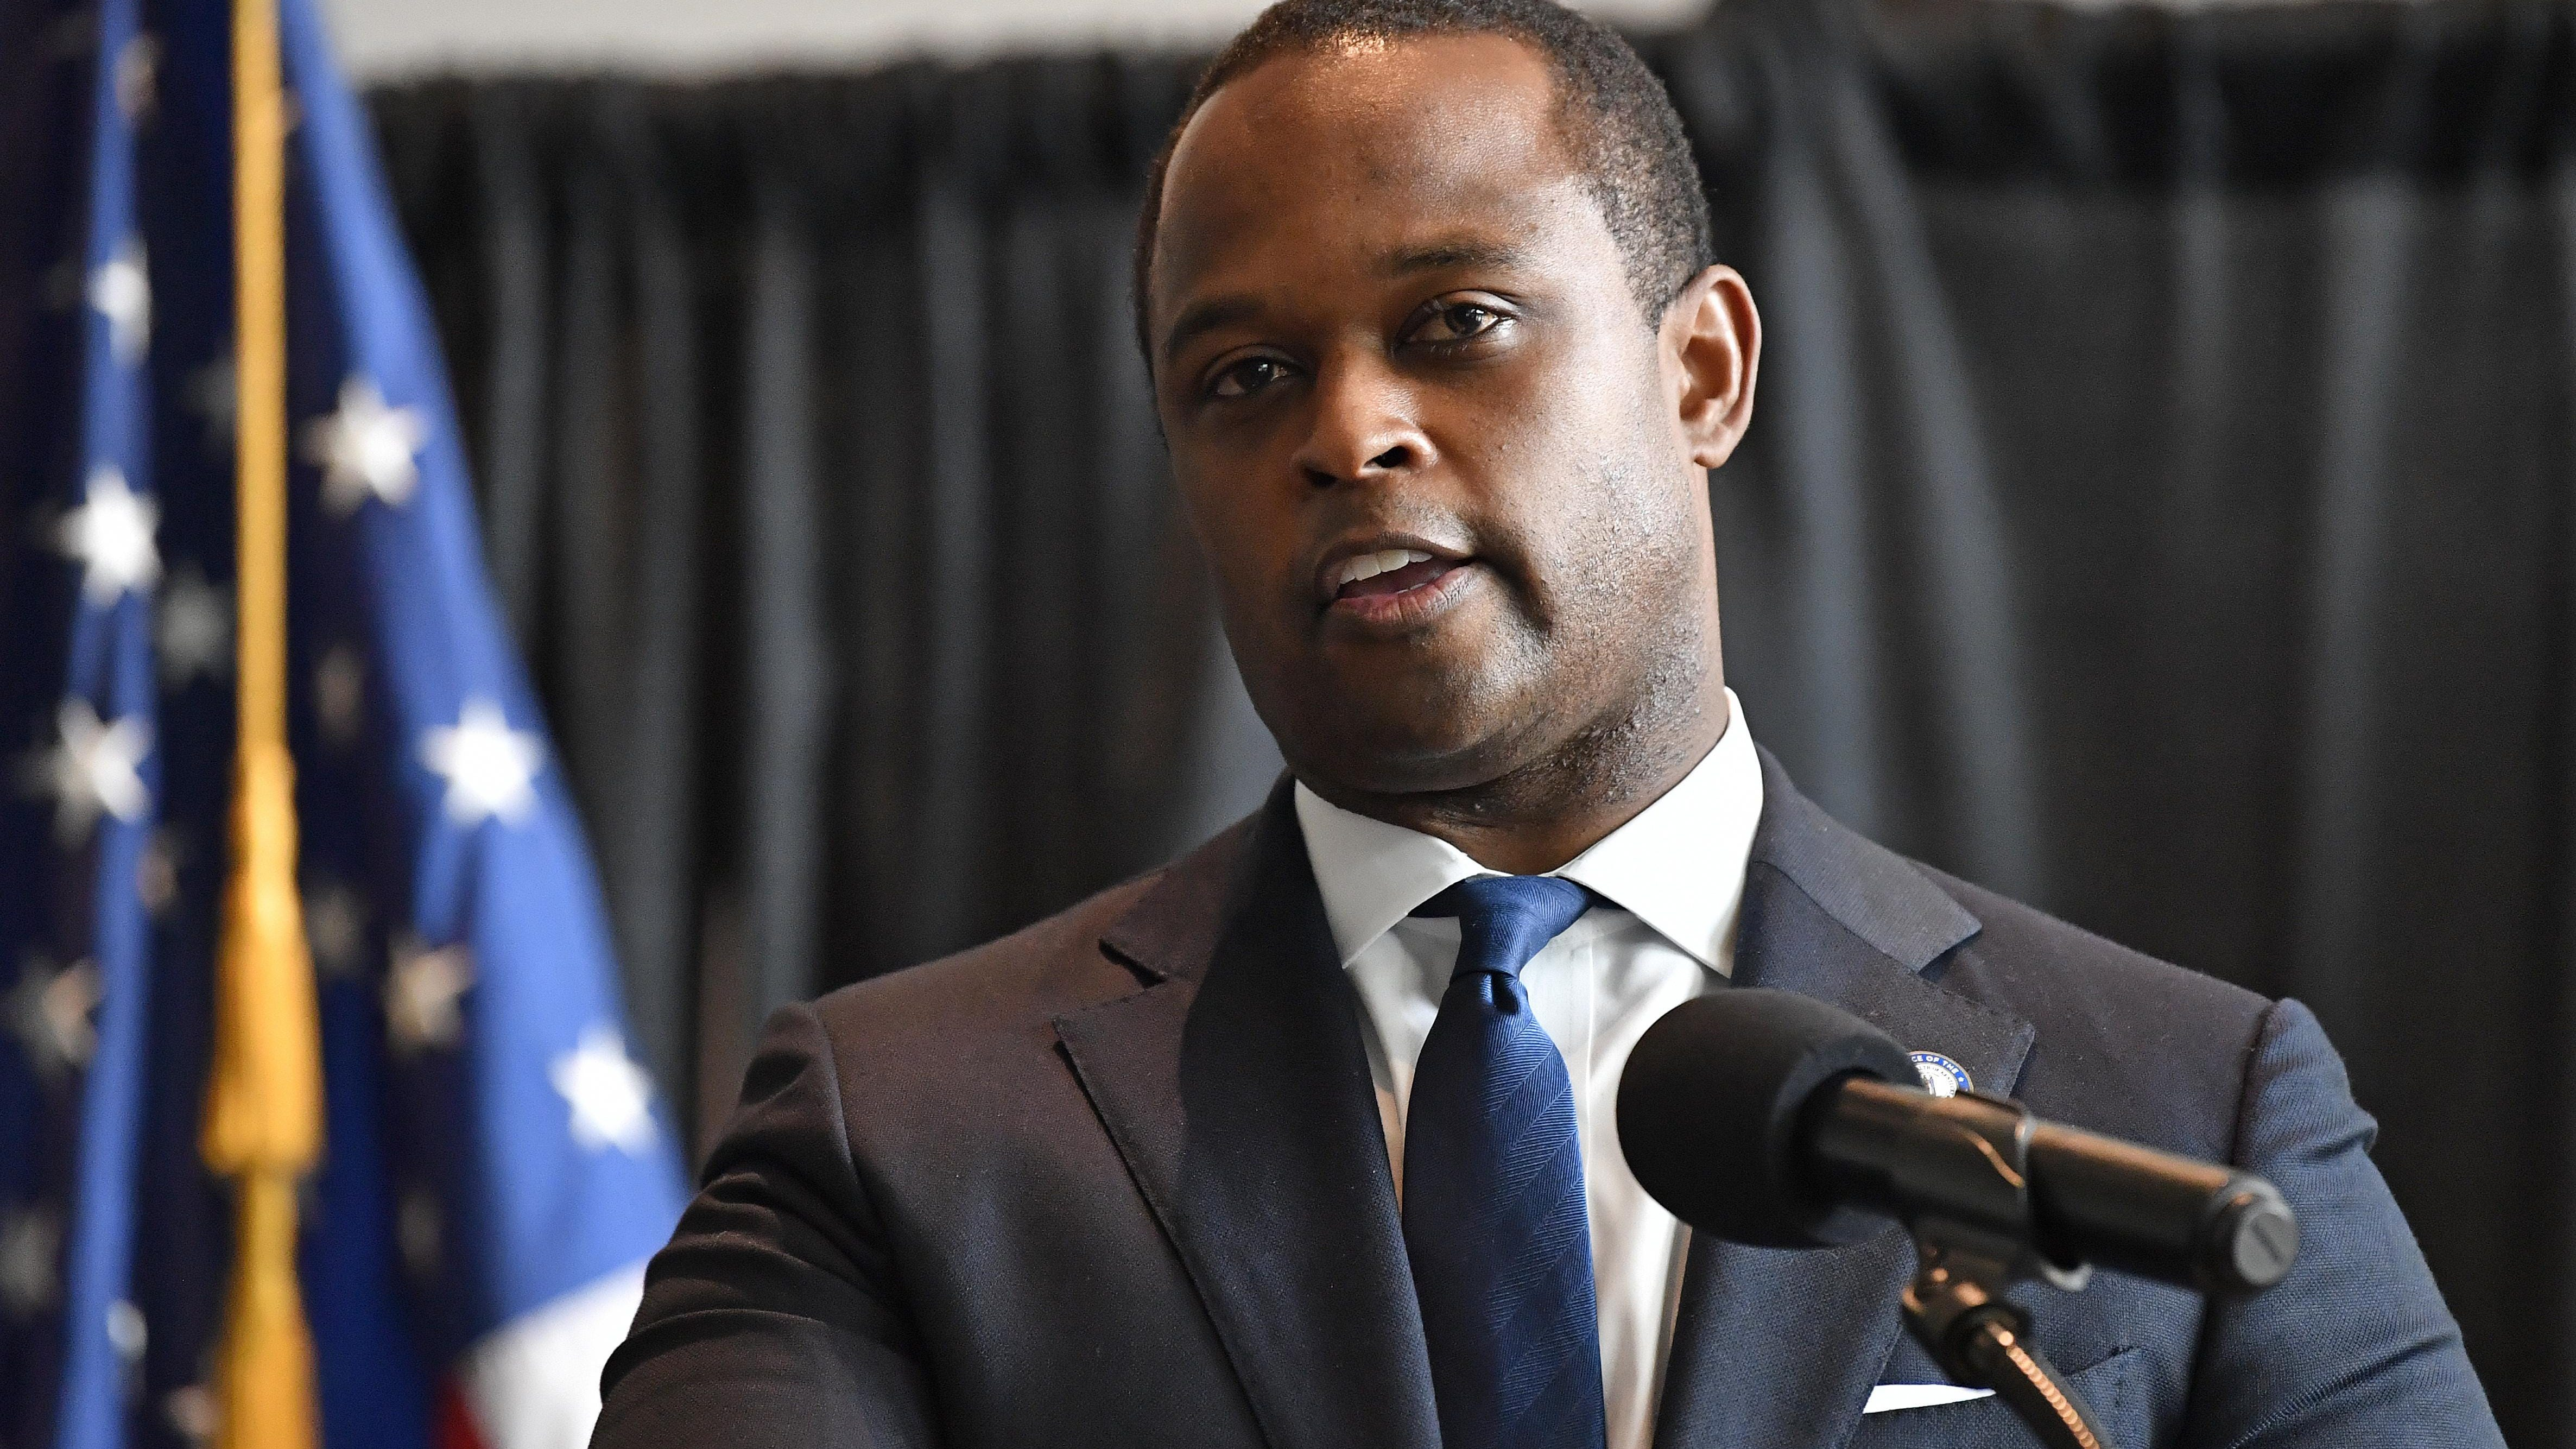 Kentucky Attorney General Daniel Cameron plans to ask the U.S. Supreme Court to create a path for him to revive a state law that would block a second-trimester procedure to end pregnancies.